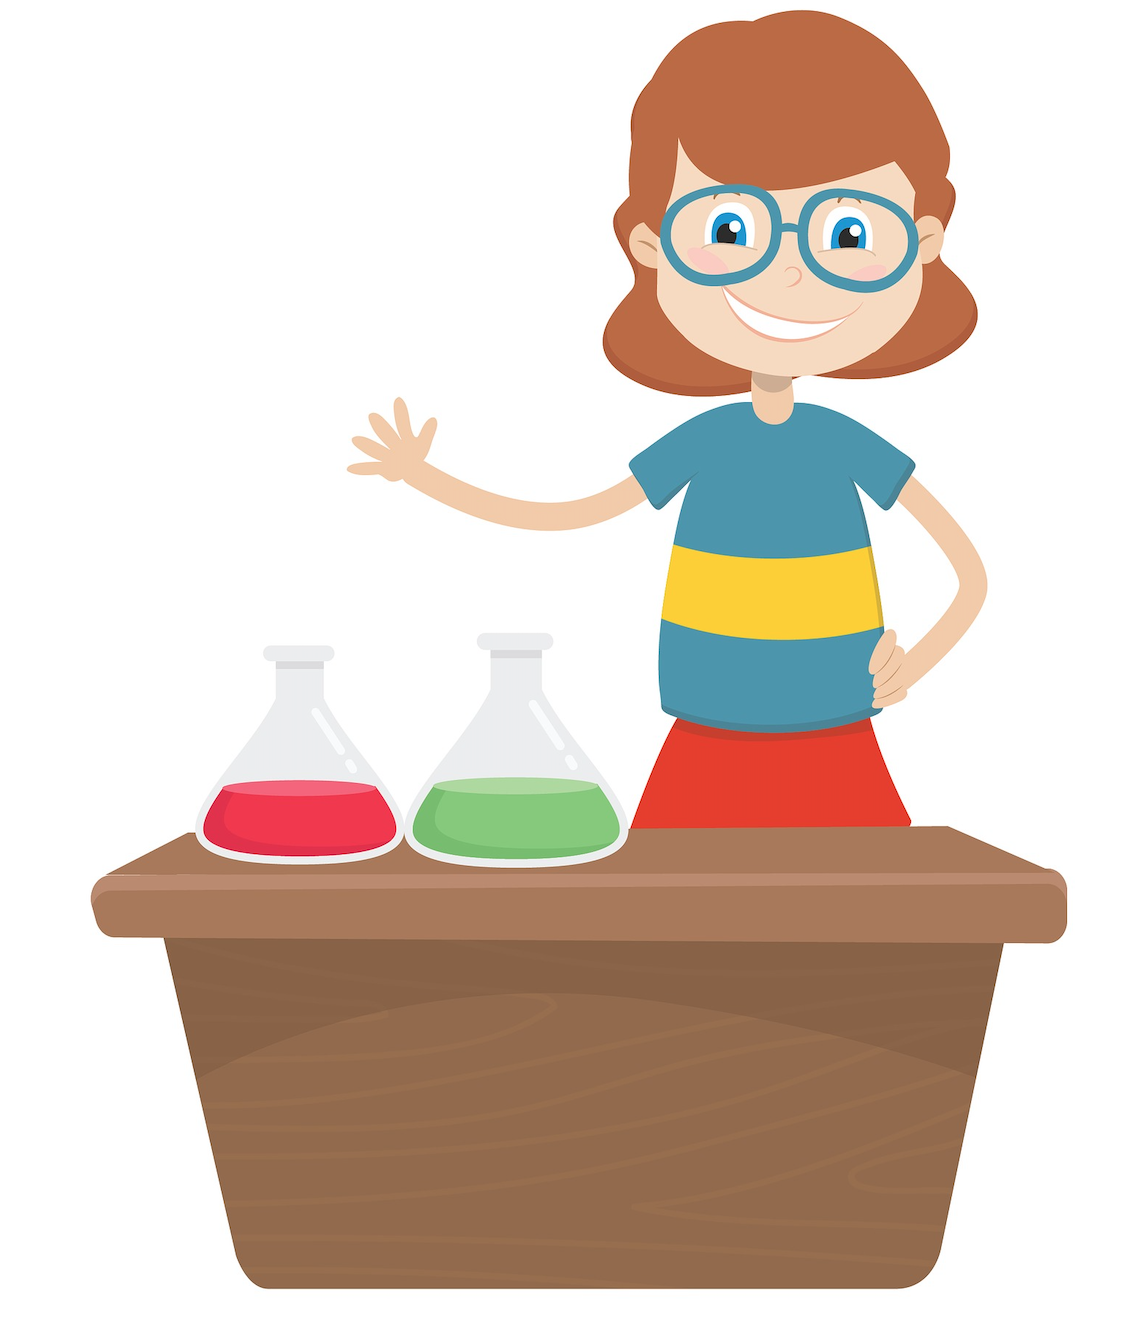 science clip art edteam article april 2020